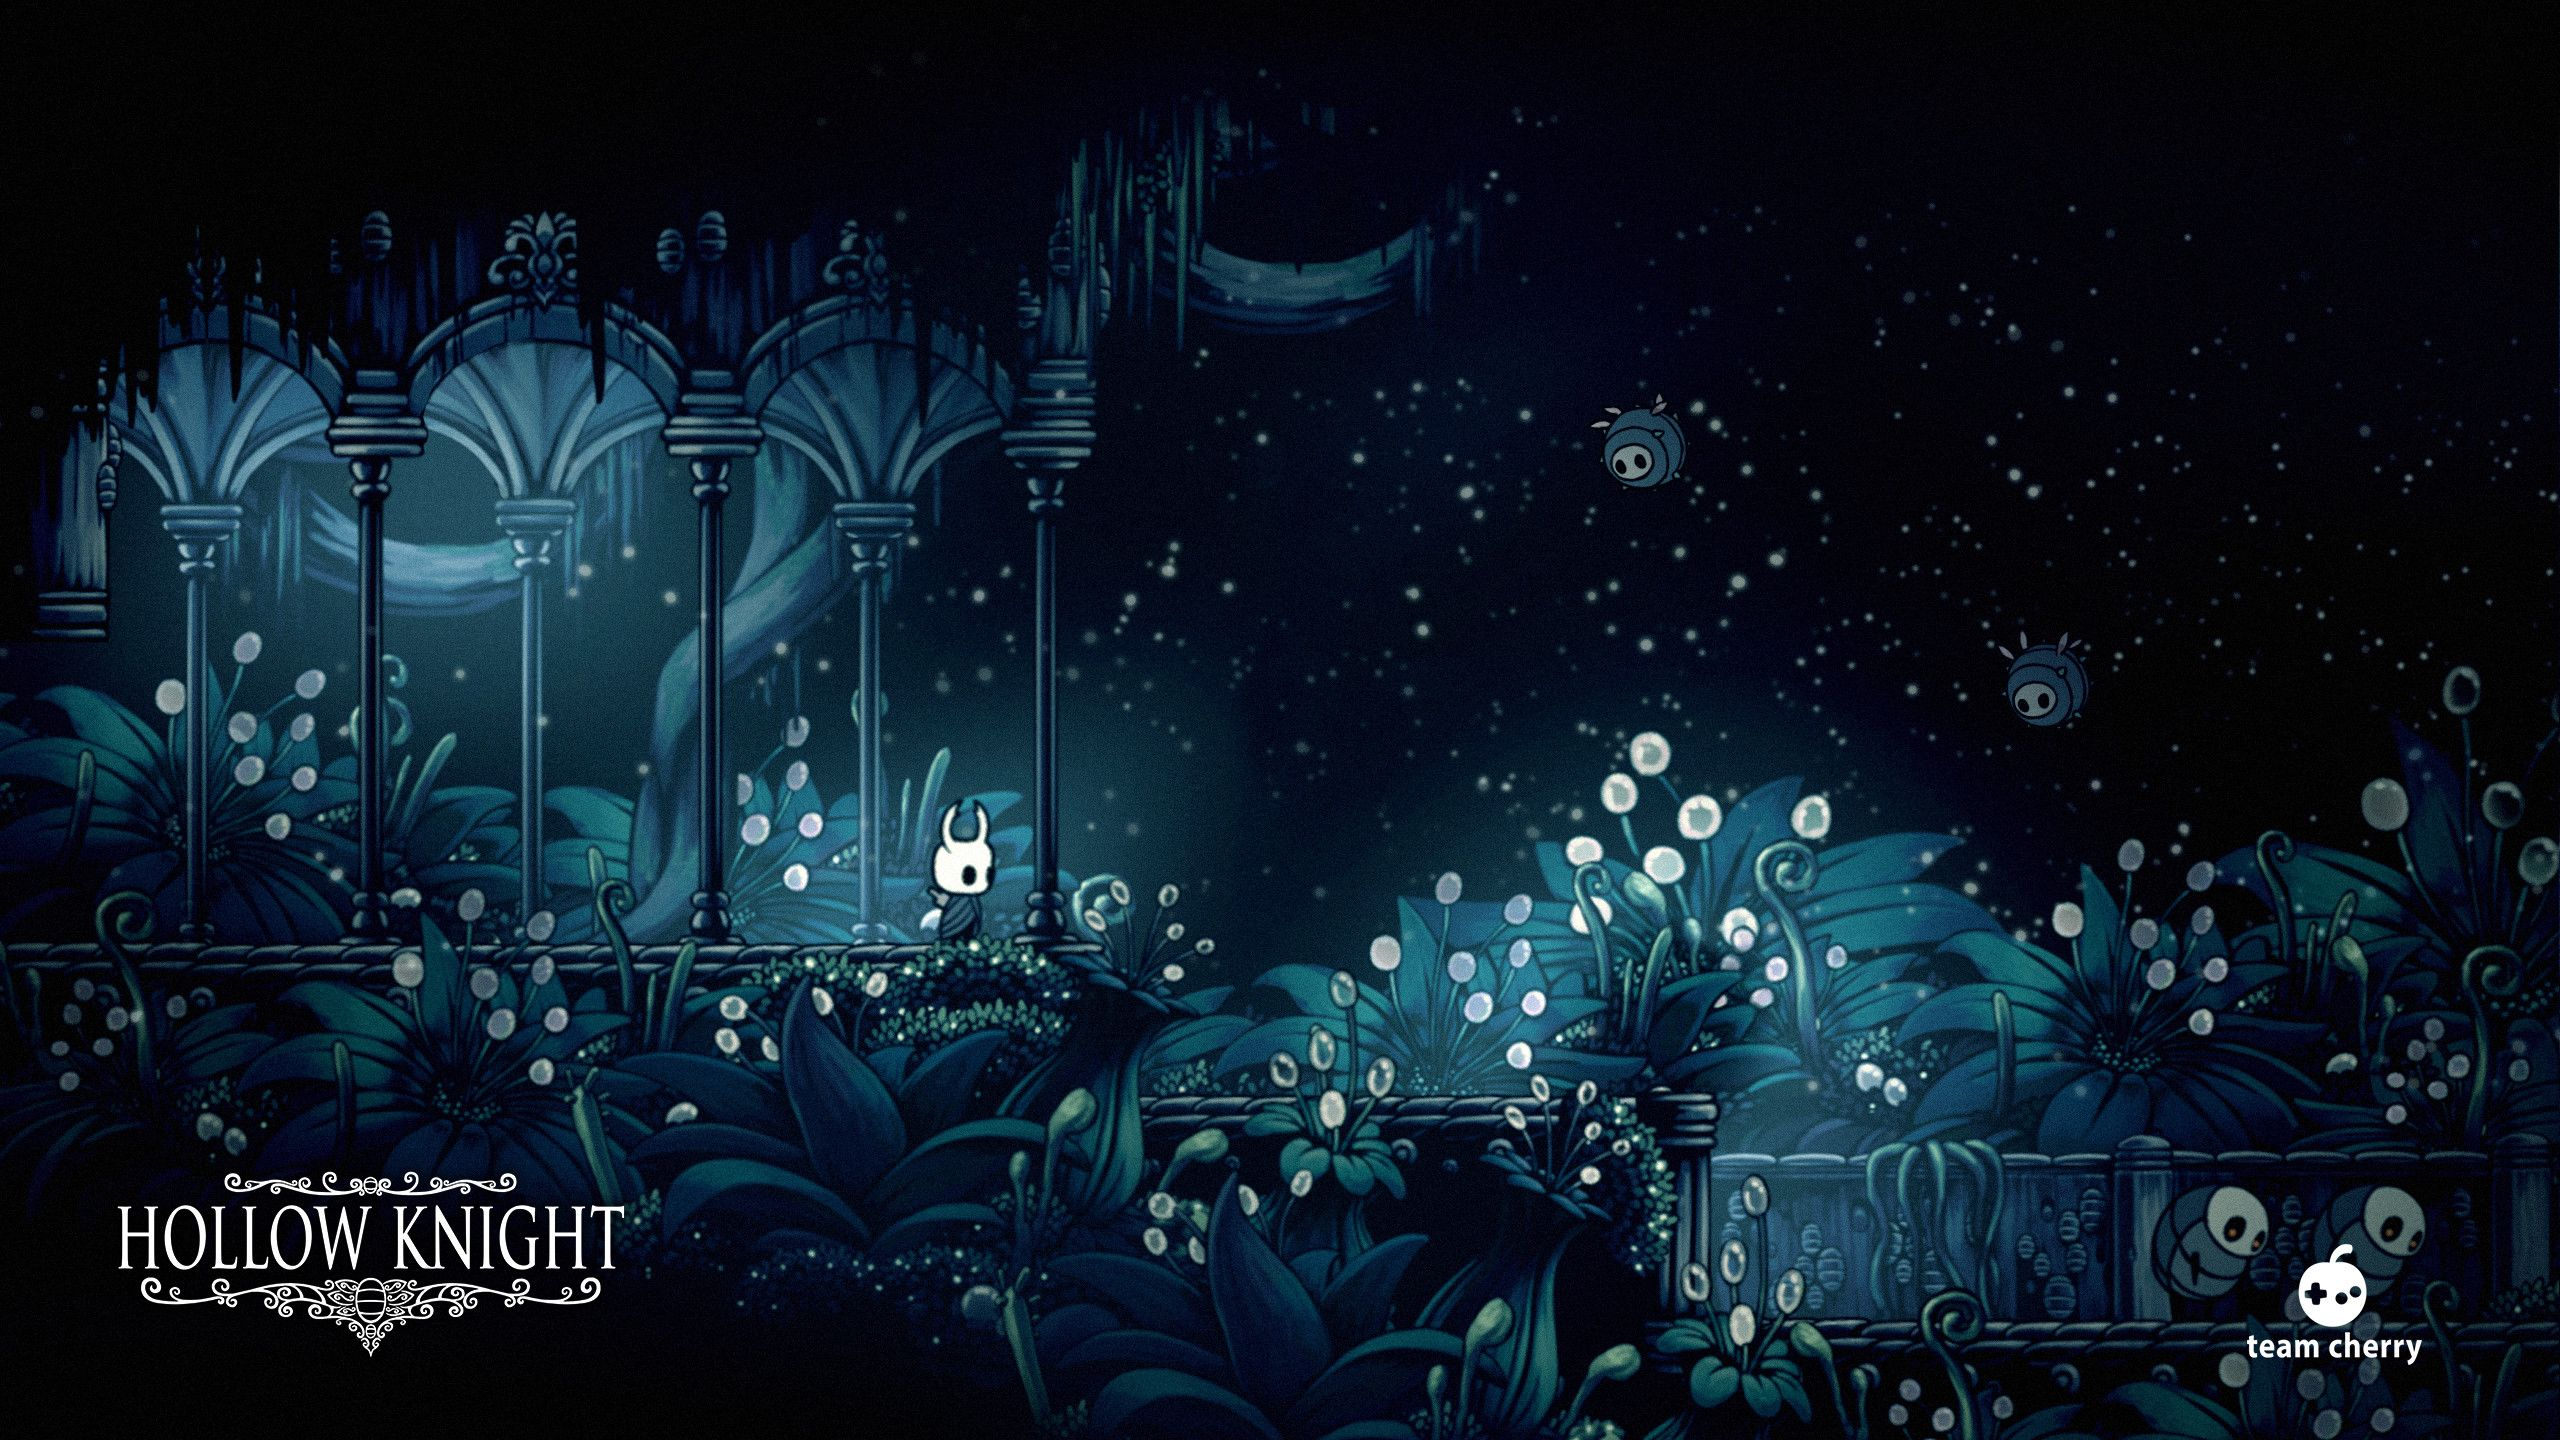 Hollow Knight Hd Wallpaper 2 2560 X 1440 Background Images Wallpaper Backgrounds Theme Background